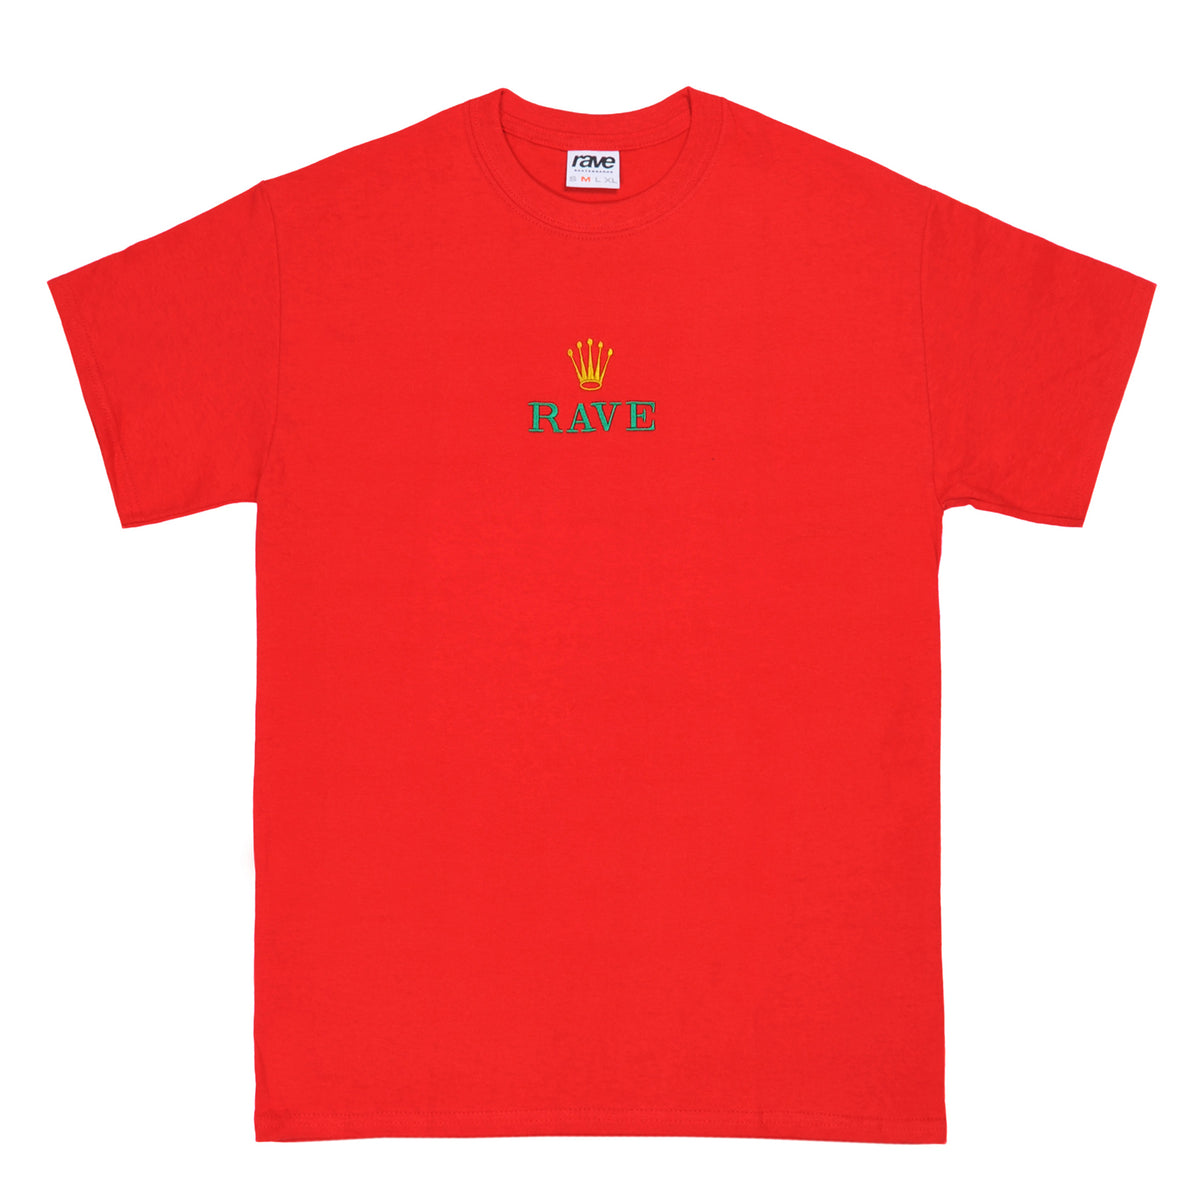 GMT red tee - RAVE skateboards